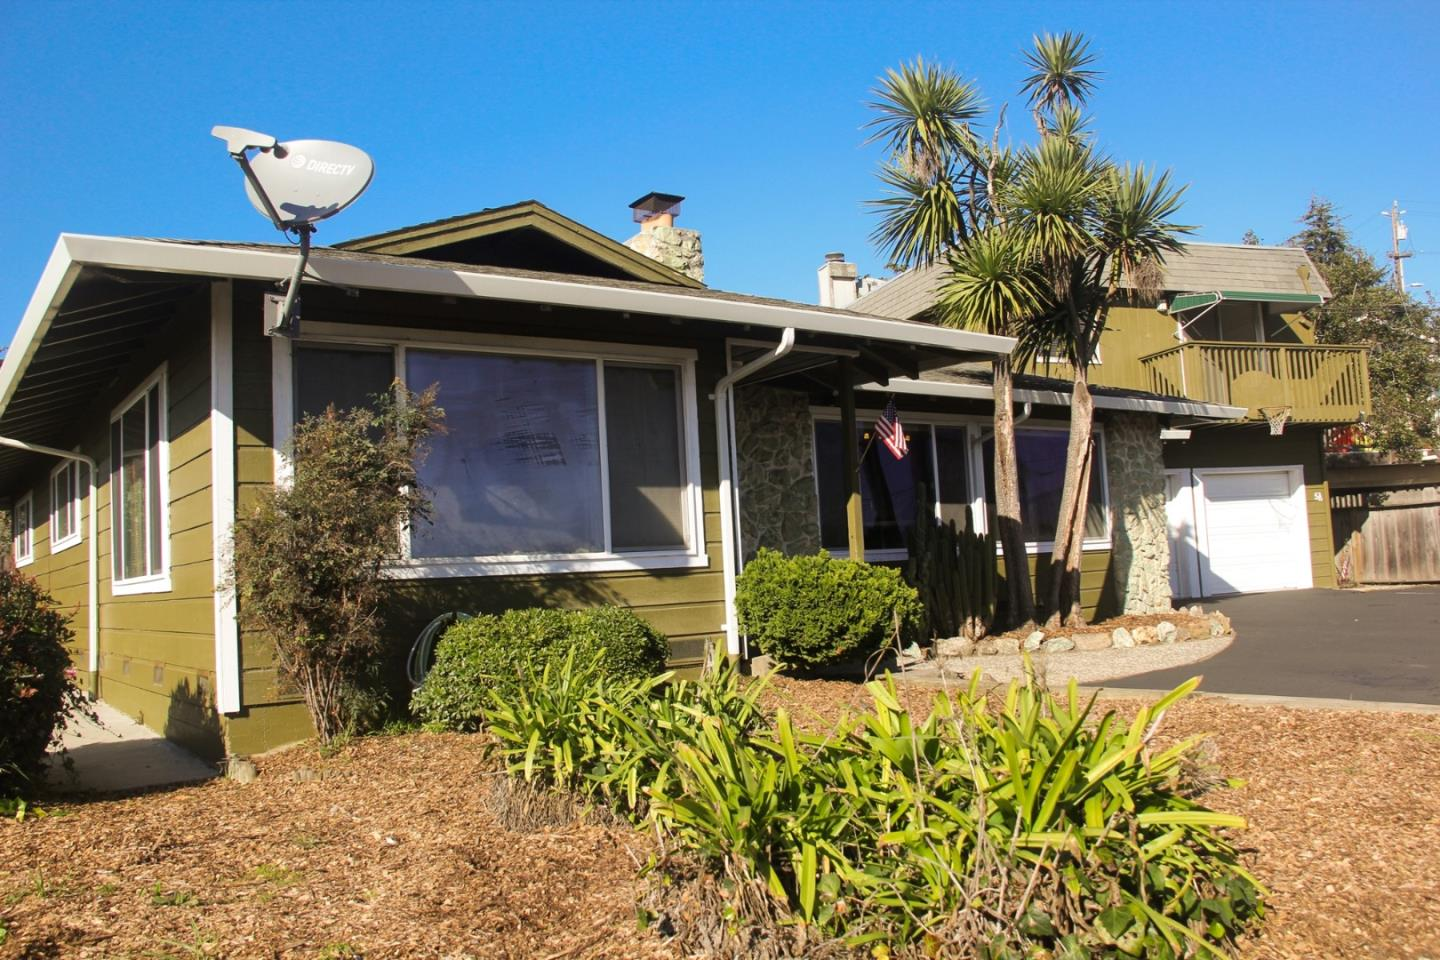 Located in one of Watsonville's finest neighborhoods.  This home is truly one-of-a-kind. The main house is approximately 1,500 square feet with 3 bedrooms and 2 and a half bathrooms. The guest unit was built in the early 1980's.  With a separate entrance, it boasts approximately an additional 1,500 square feet with 3 bedrooms, 1 bathroom and a full kitchen.  There are two areas for laundry hook-ups.  The double car garage has been divided into two single car garages.  This is a very special home because the new owner can rent the guest unit or make this remarkable property a family compound.  You must see it to truly believe it.  The potential is endless.  The home is conveniently located near a variety of shops and grocery stores.  For those who like a long walk in nature, this home is near the walking trails in Struve Slough.